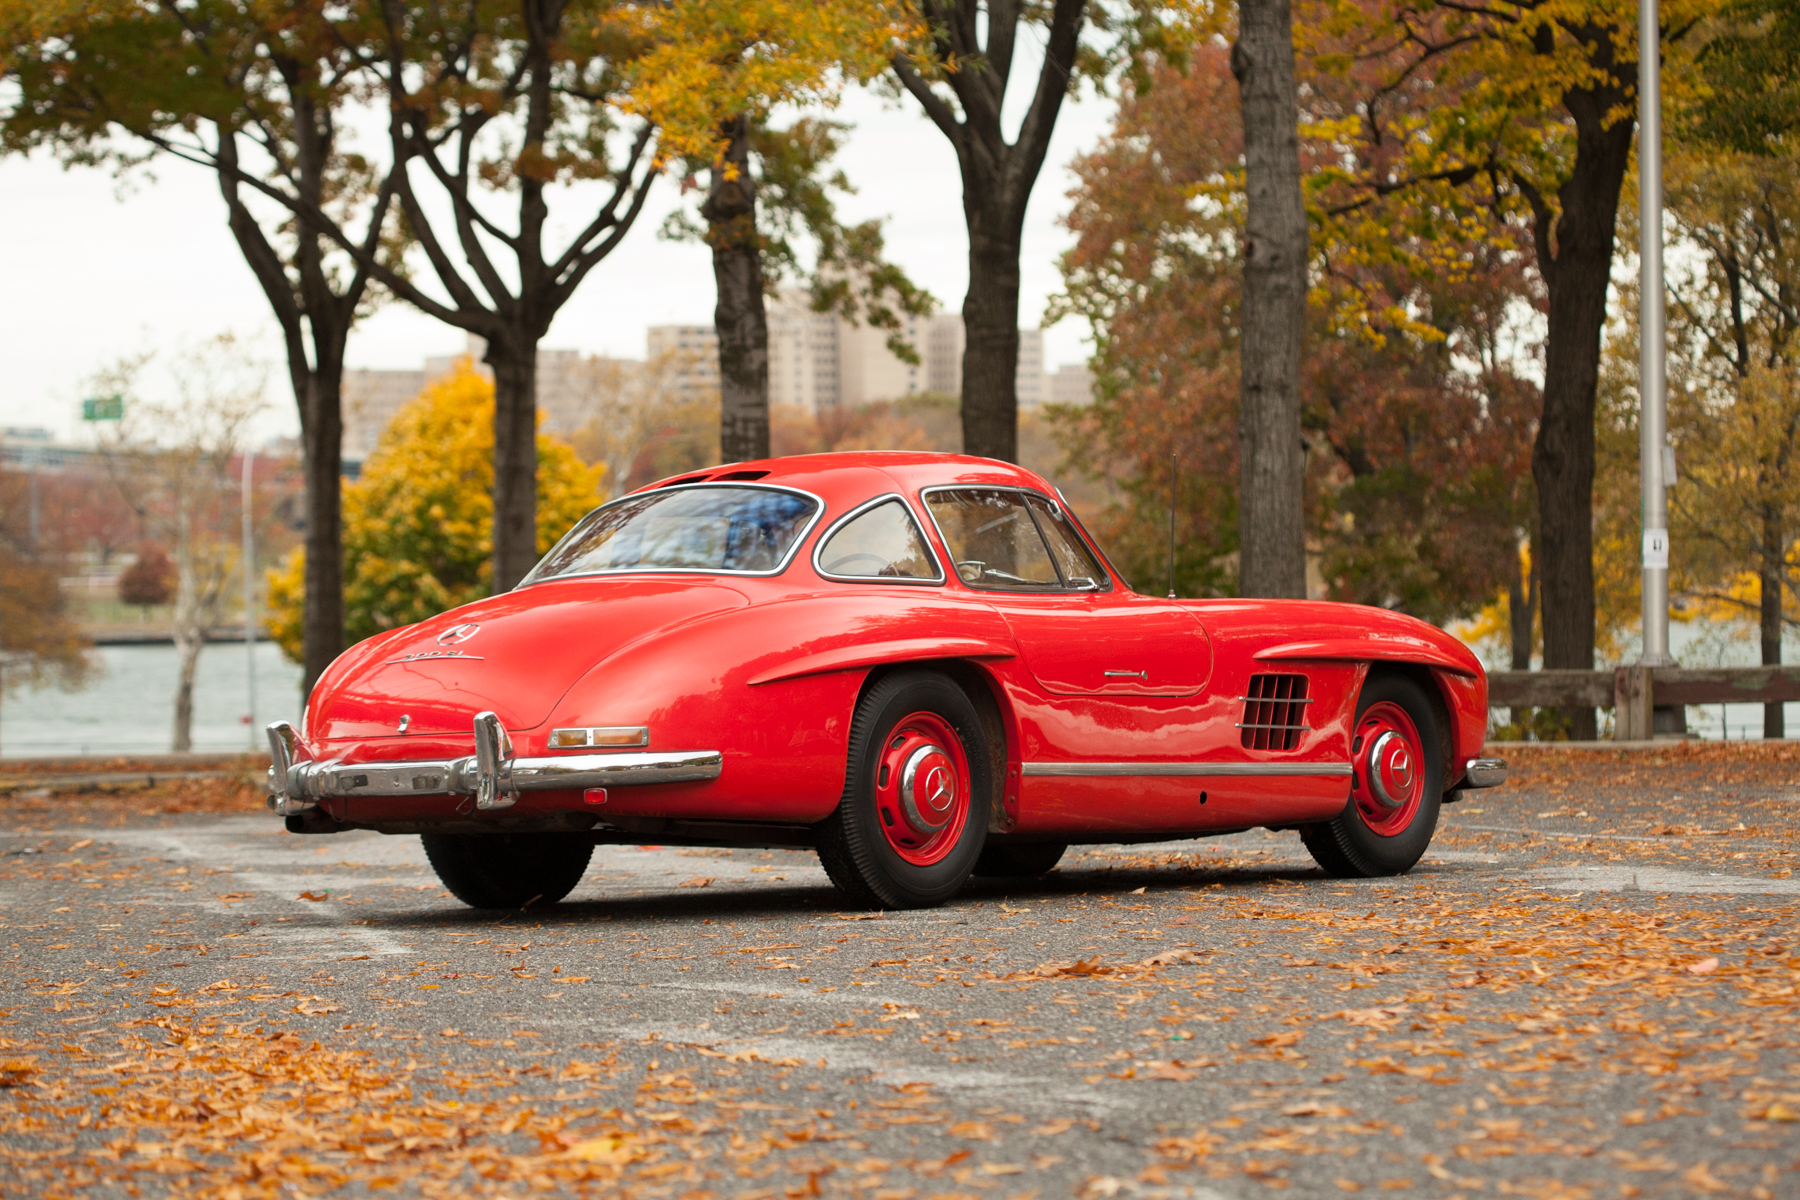 1956 mercedes benz 300sl gullwing silver arrow cars ltd for Mercedes benz 300sl gullwing for sale